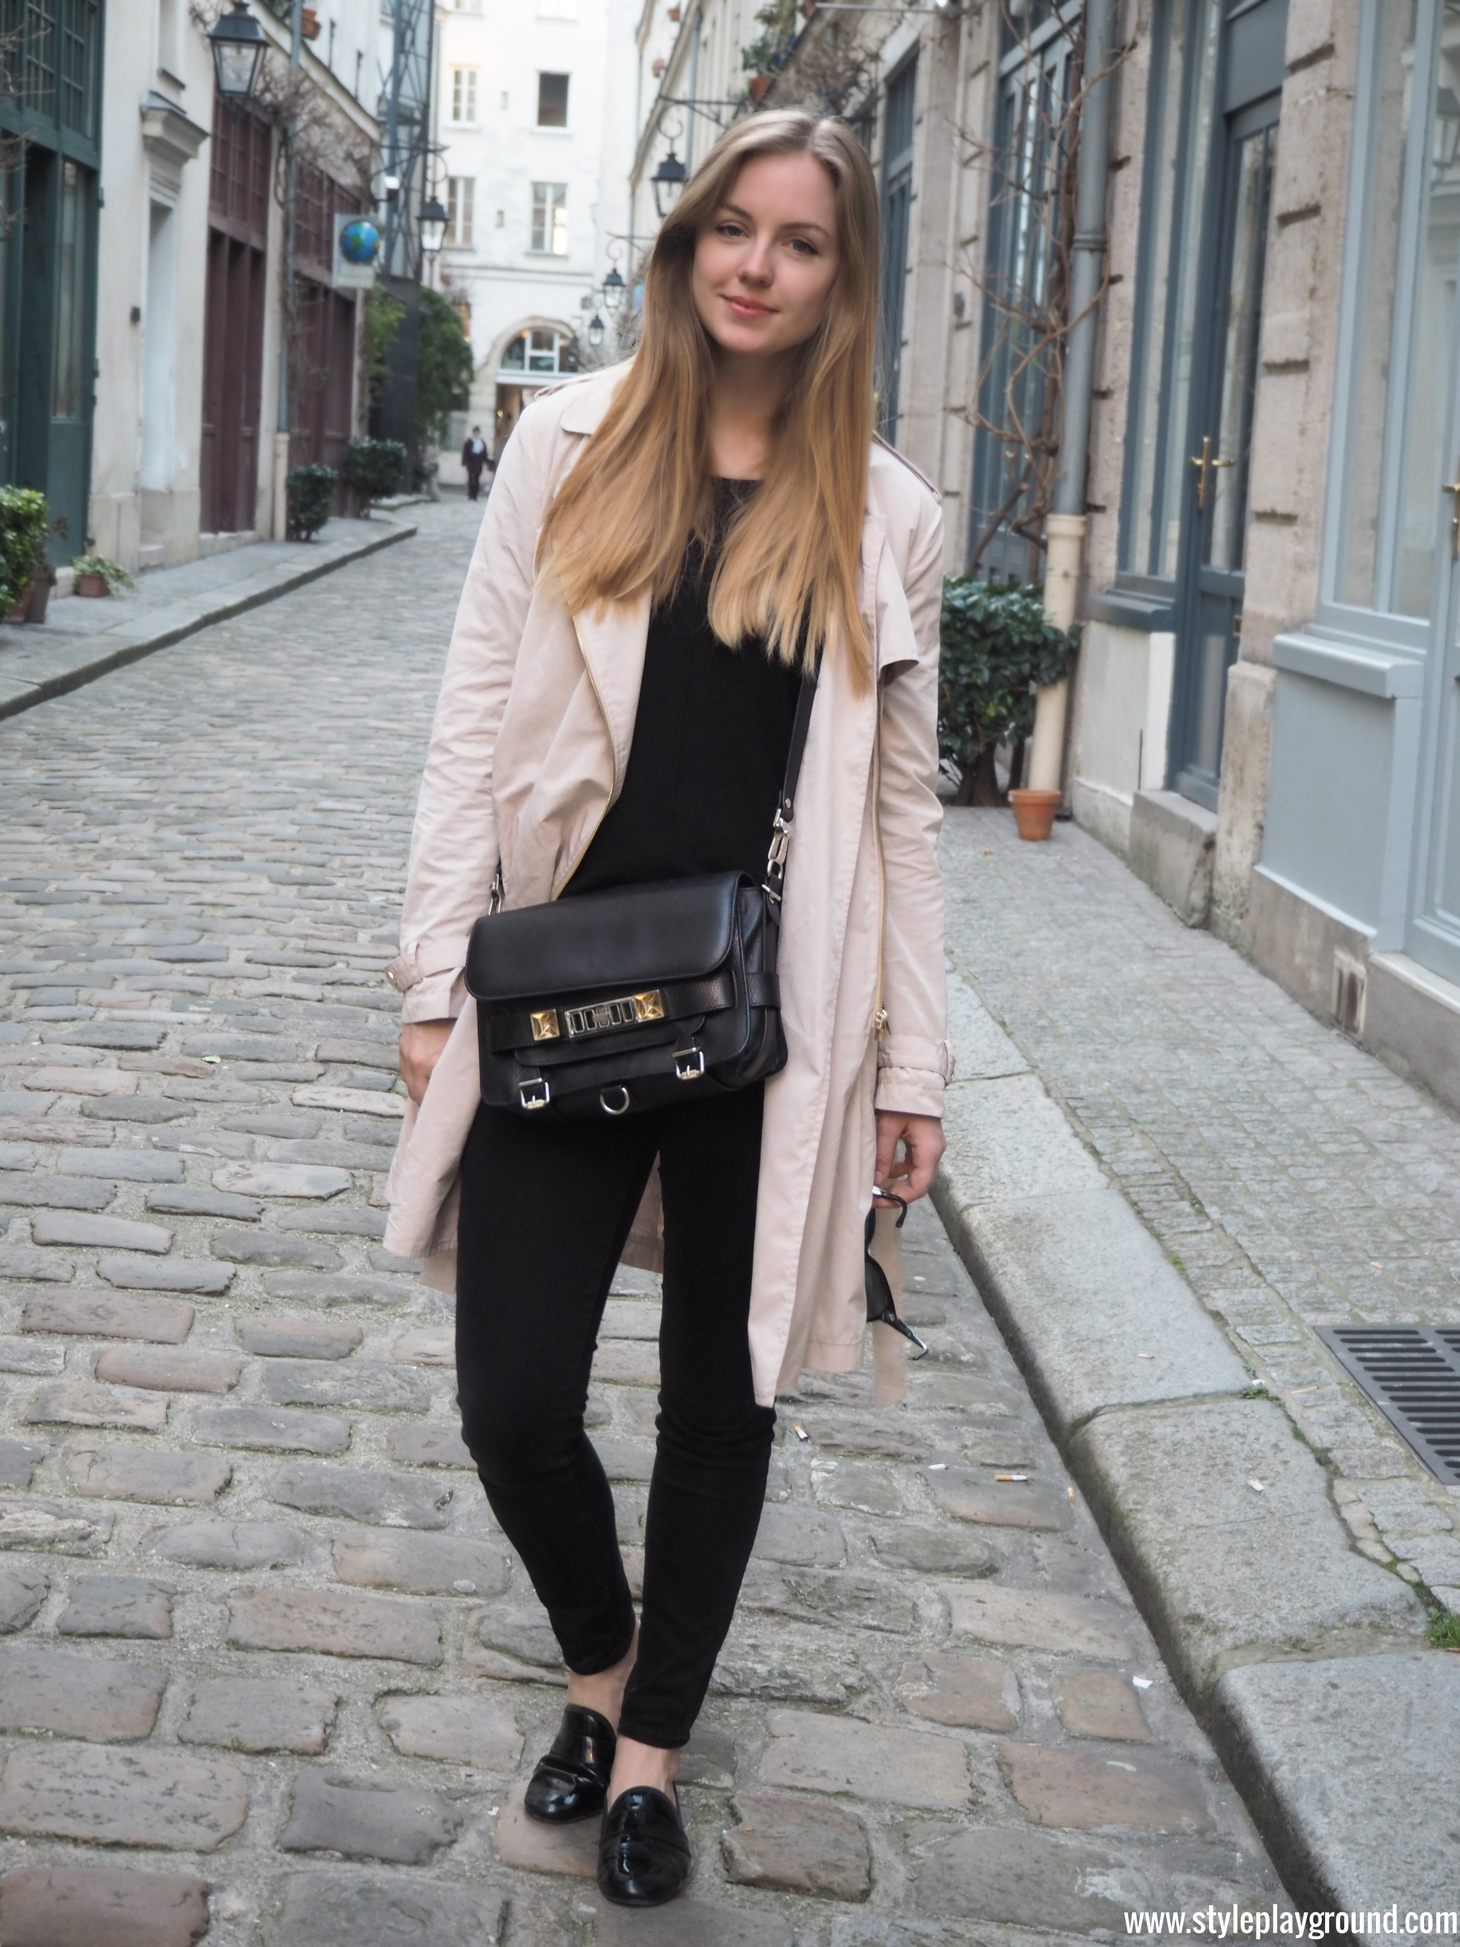 Axelle Blanpain of Style playground is wearing a Mango trench, J Brand skinny jeans, Repetto loafers & Proenza Schouler bag.